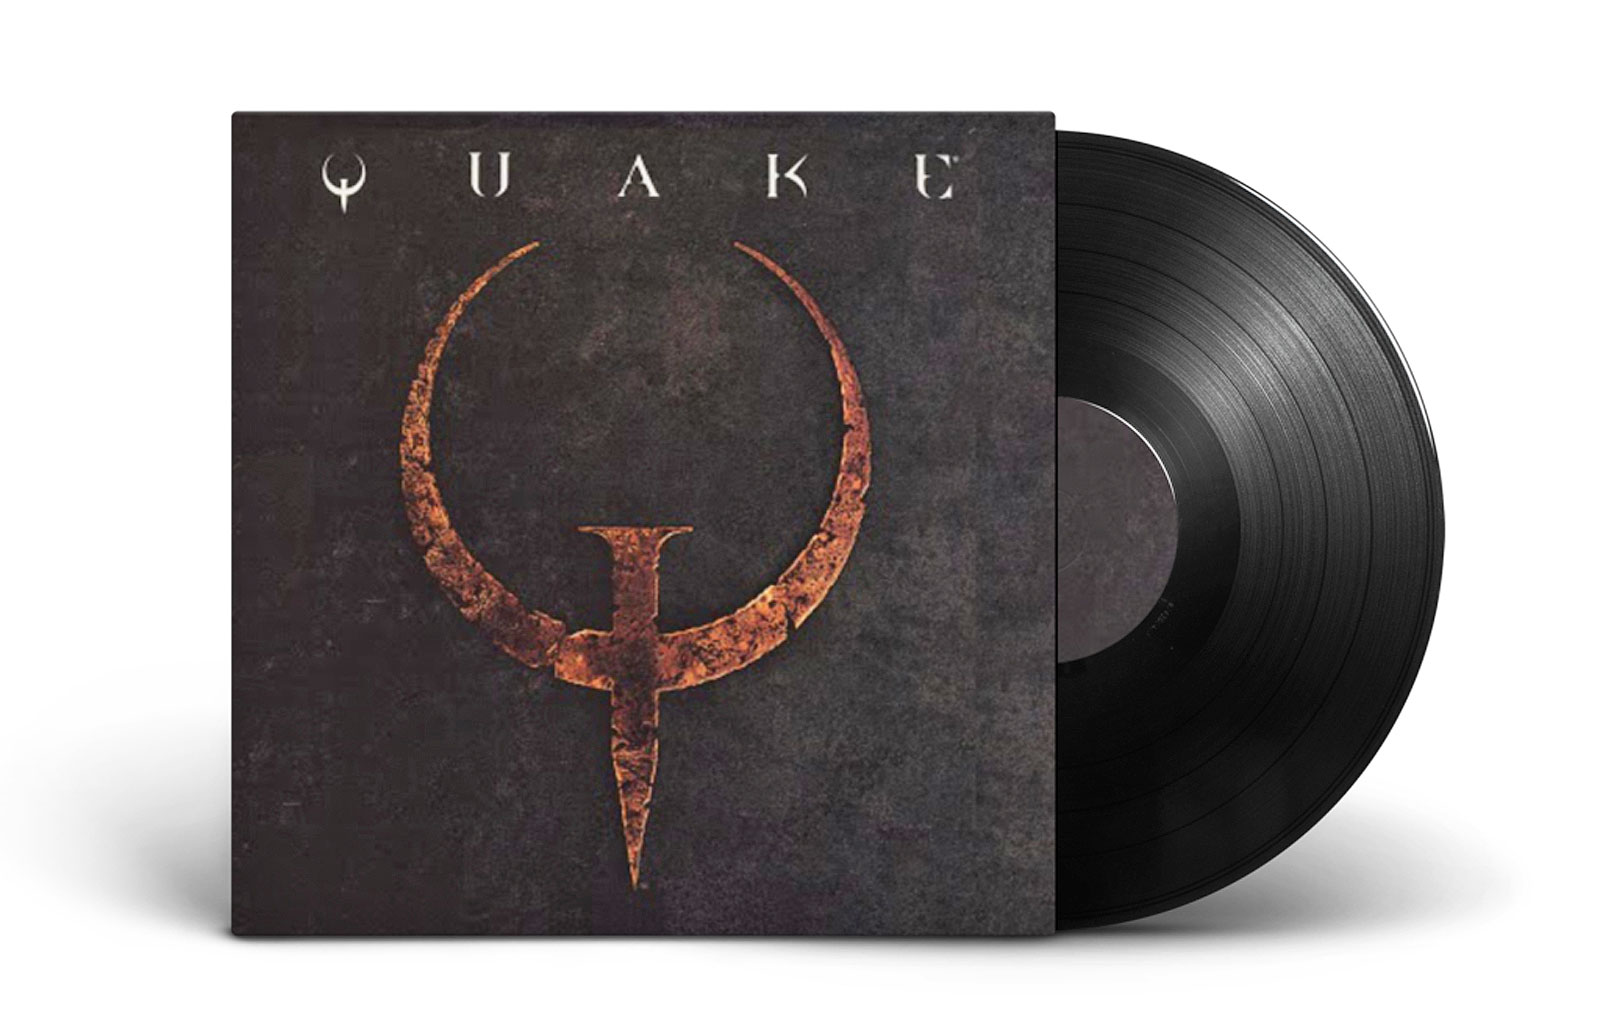 Trent Reznor Blows Dust Off The Quake Score For Vinyl